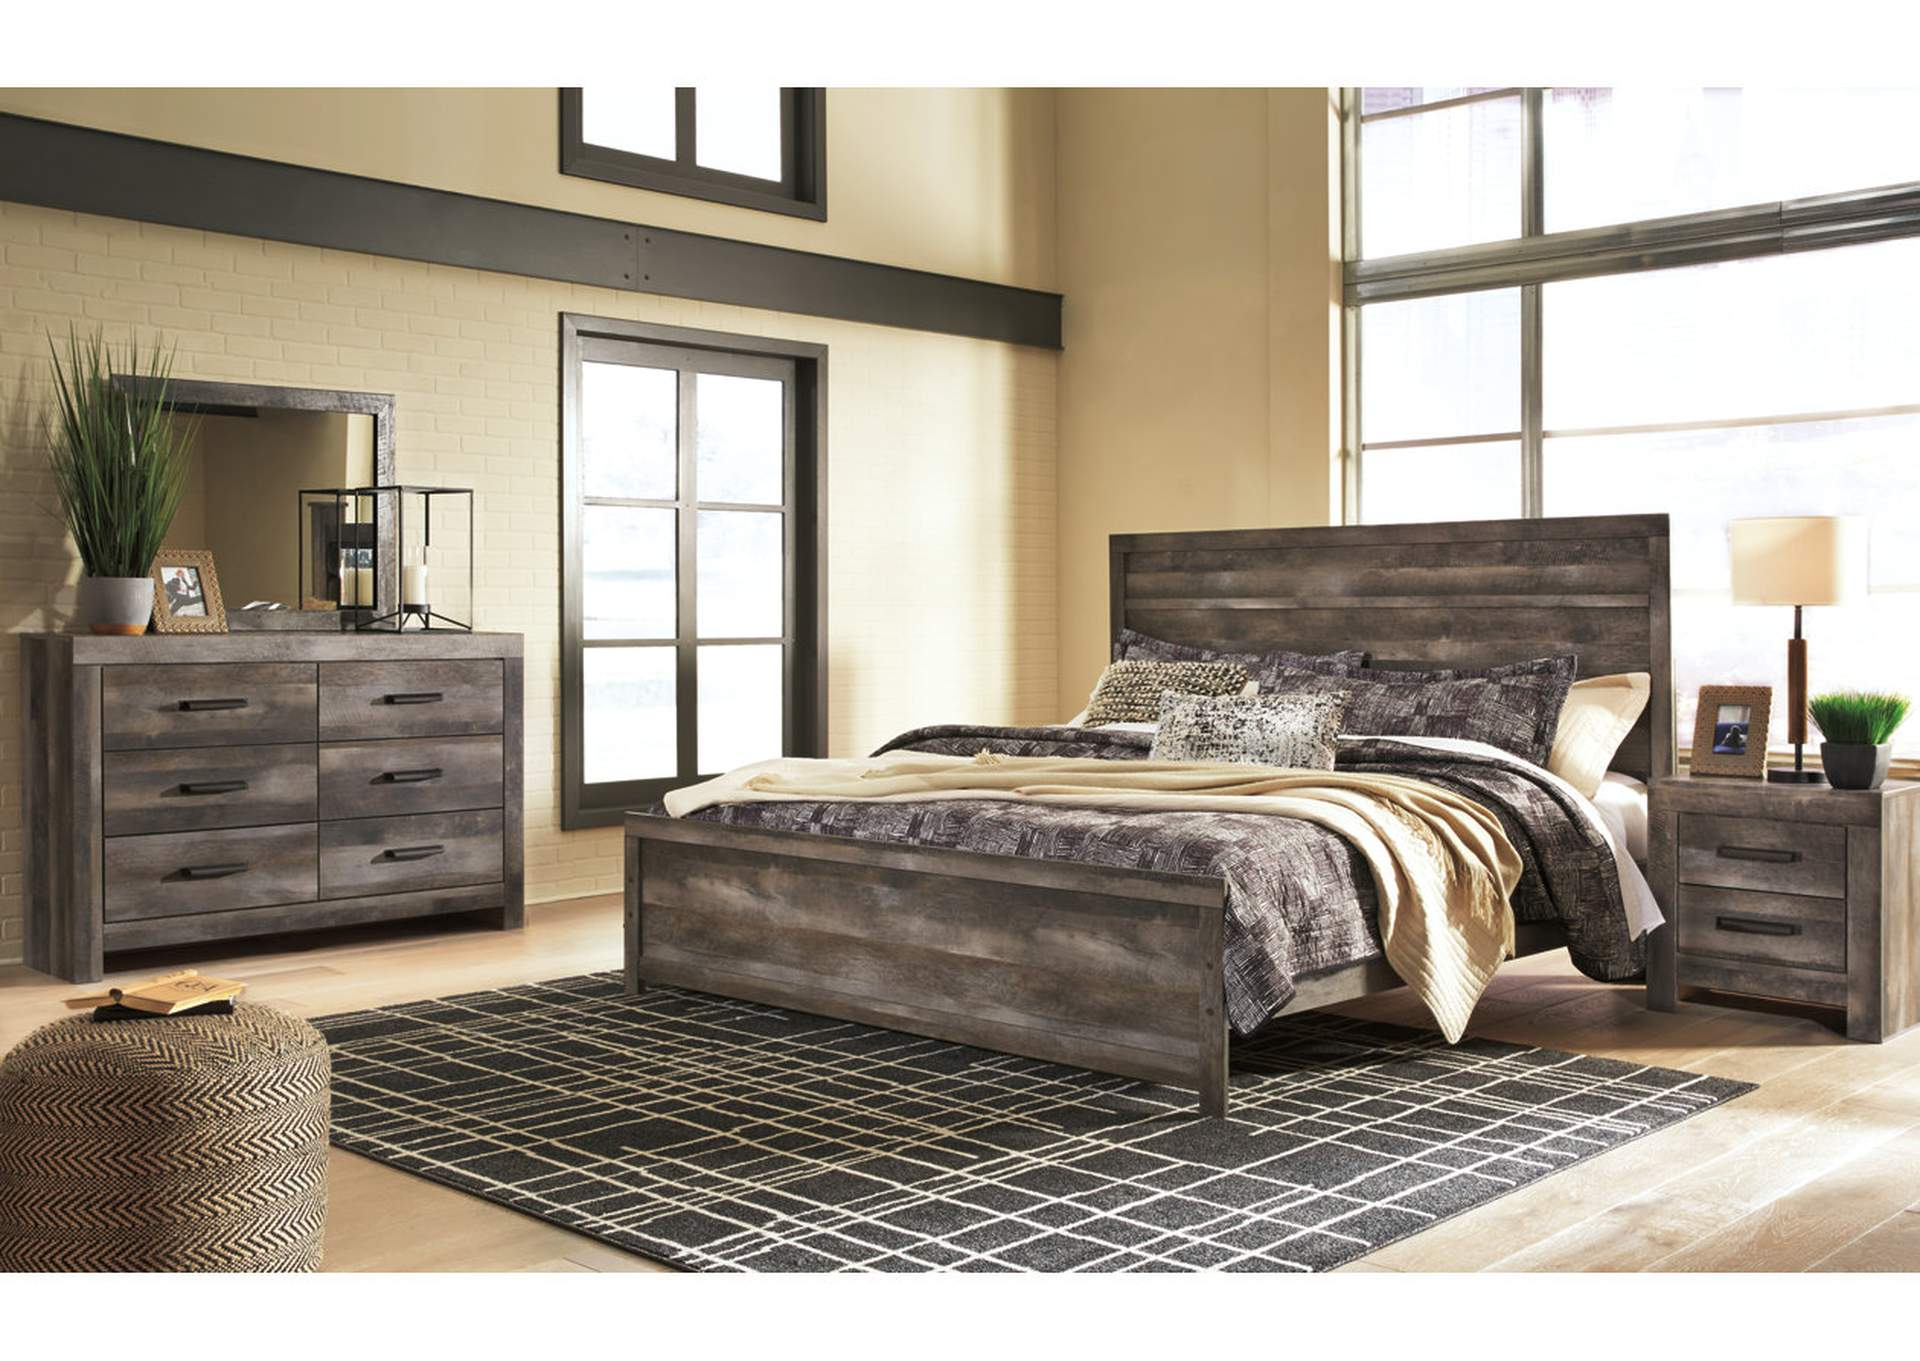 Wynnlow gray rustic 4 piece king bed set w dresser mirror and nightstand